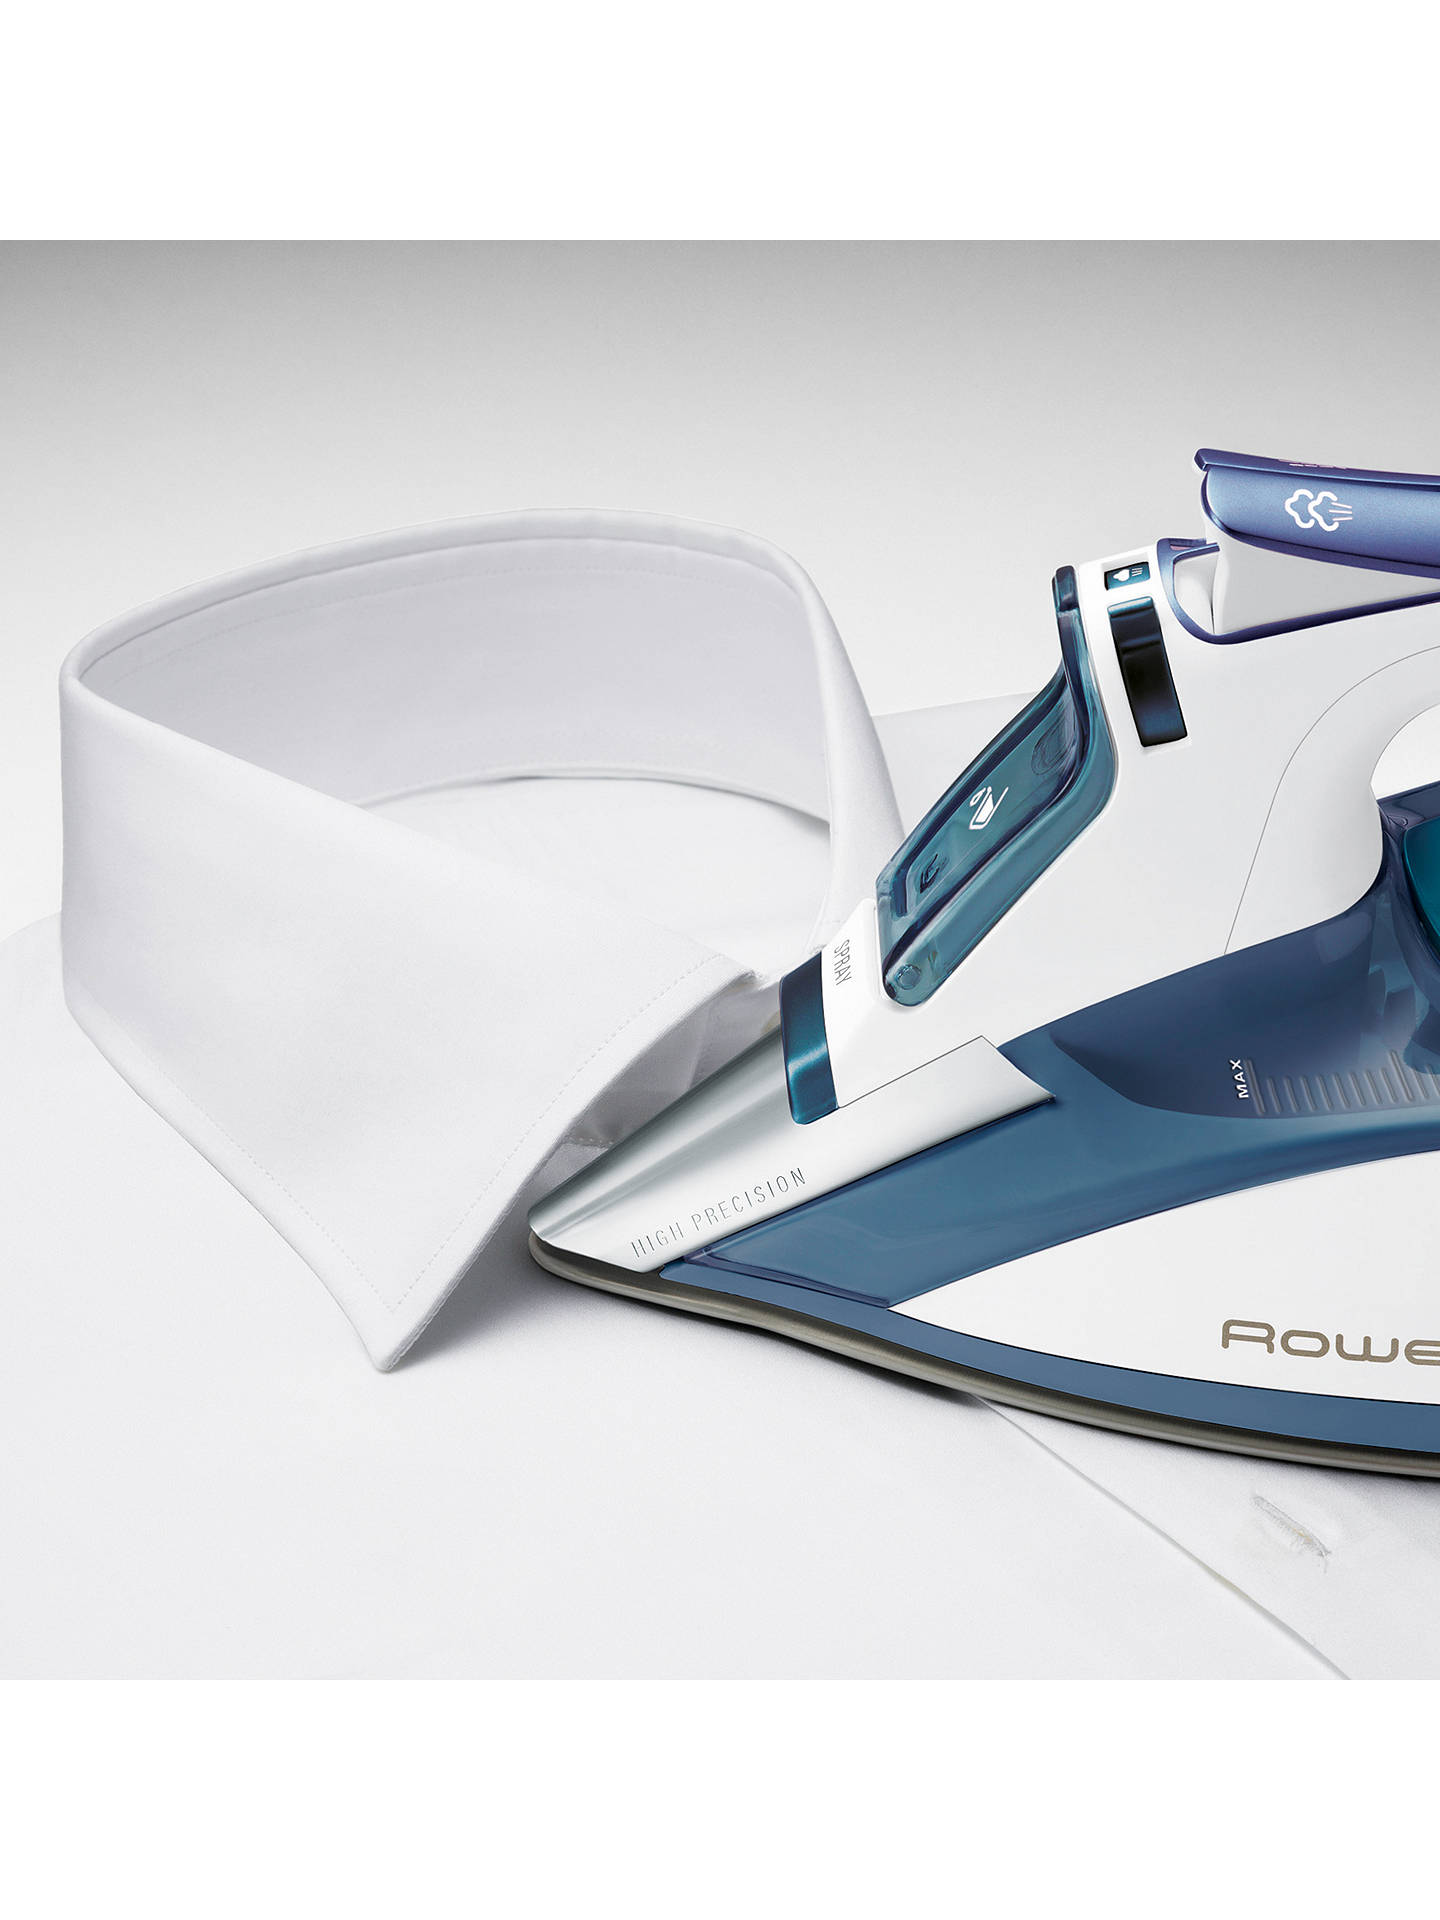 rowenta dw5110 focus steam iron at john lewis partners. Black Bedroom Furniture Sets. Home Design Ideas